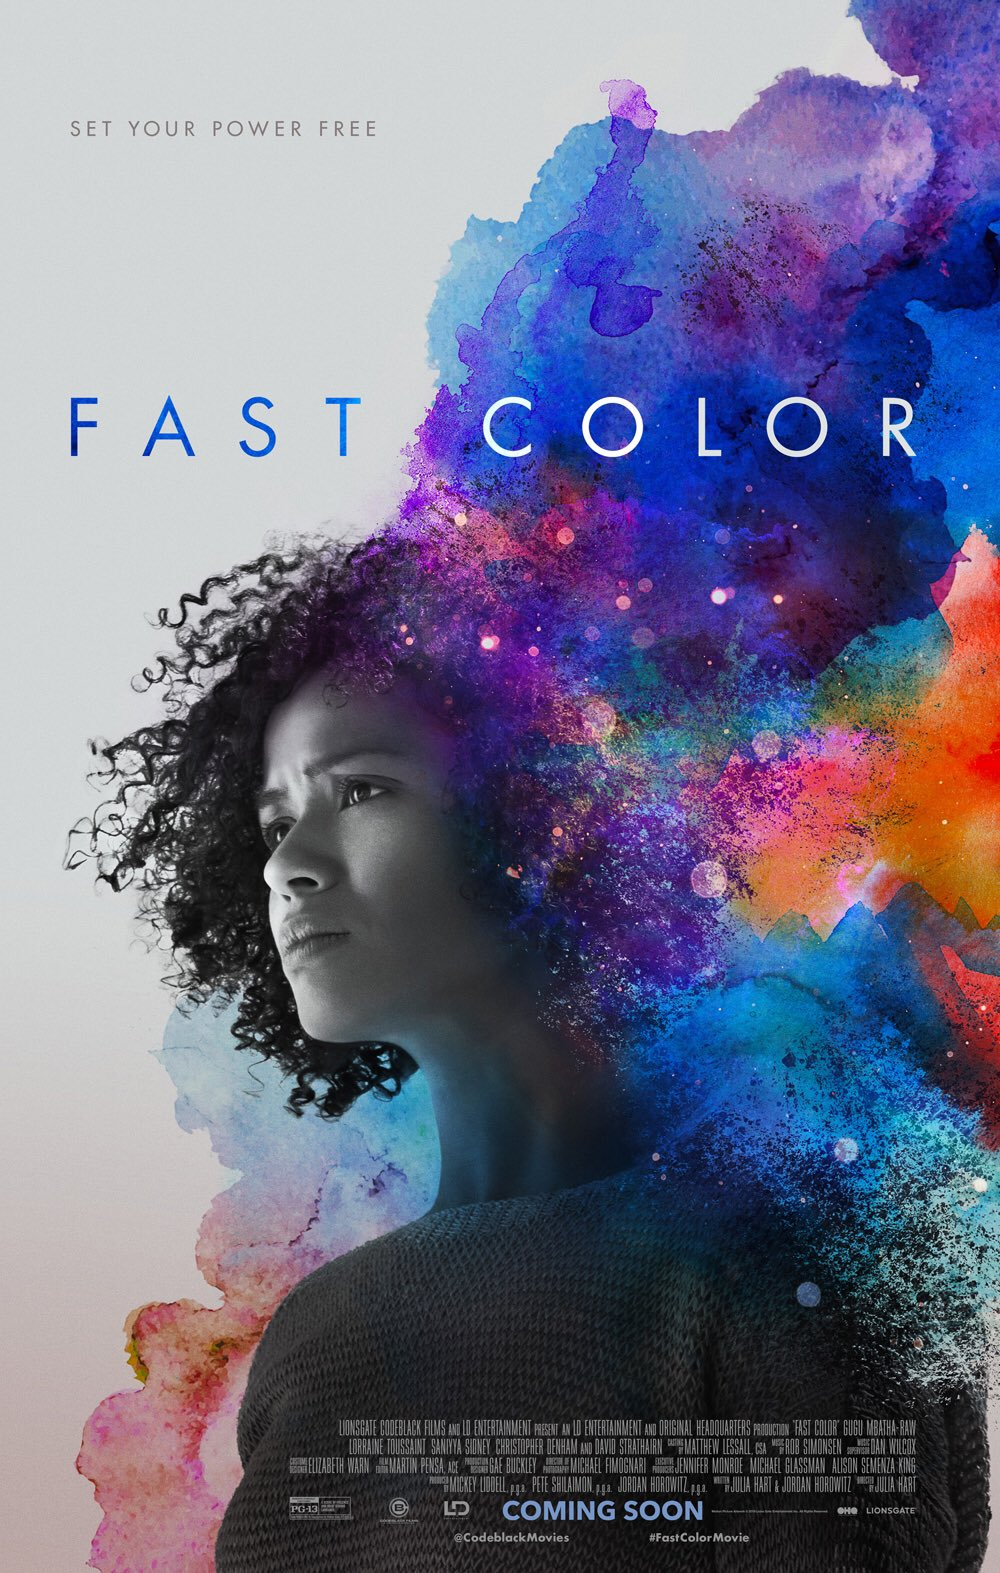 Fast Color Movie Screening Tickets, Sat, Sep 21, 2019 at 2